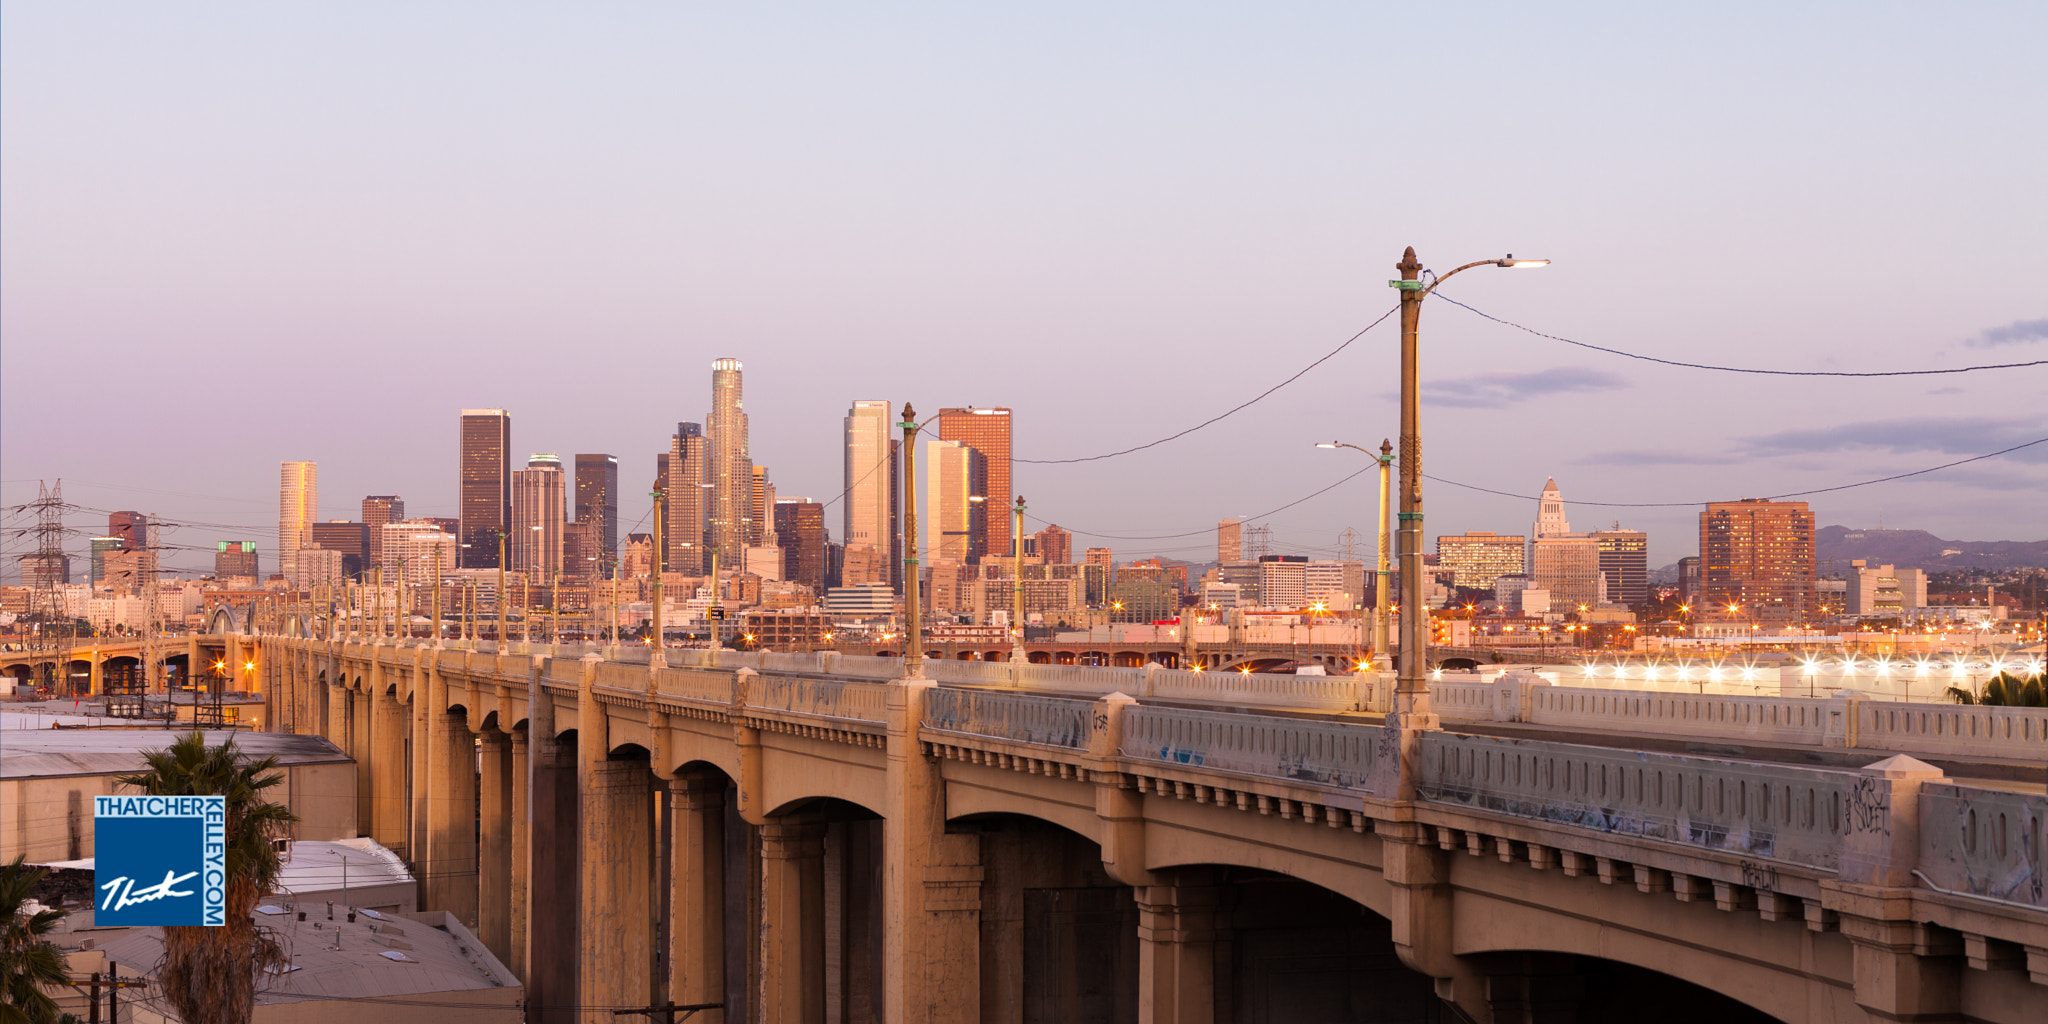 Photograph Los Angeles at Daybreak by Thatcher Kelley on 500px